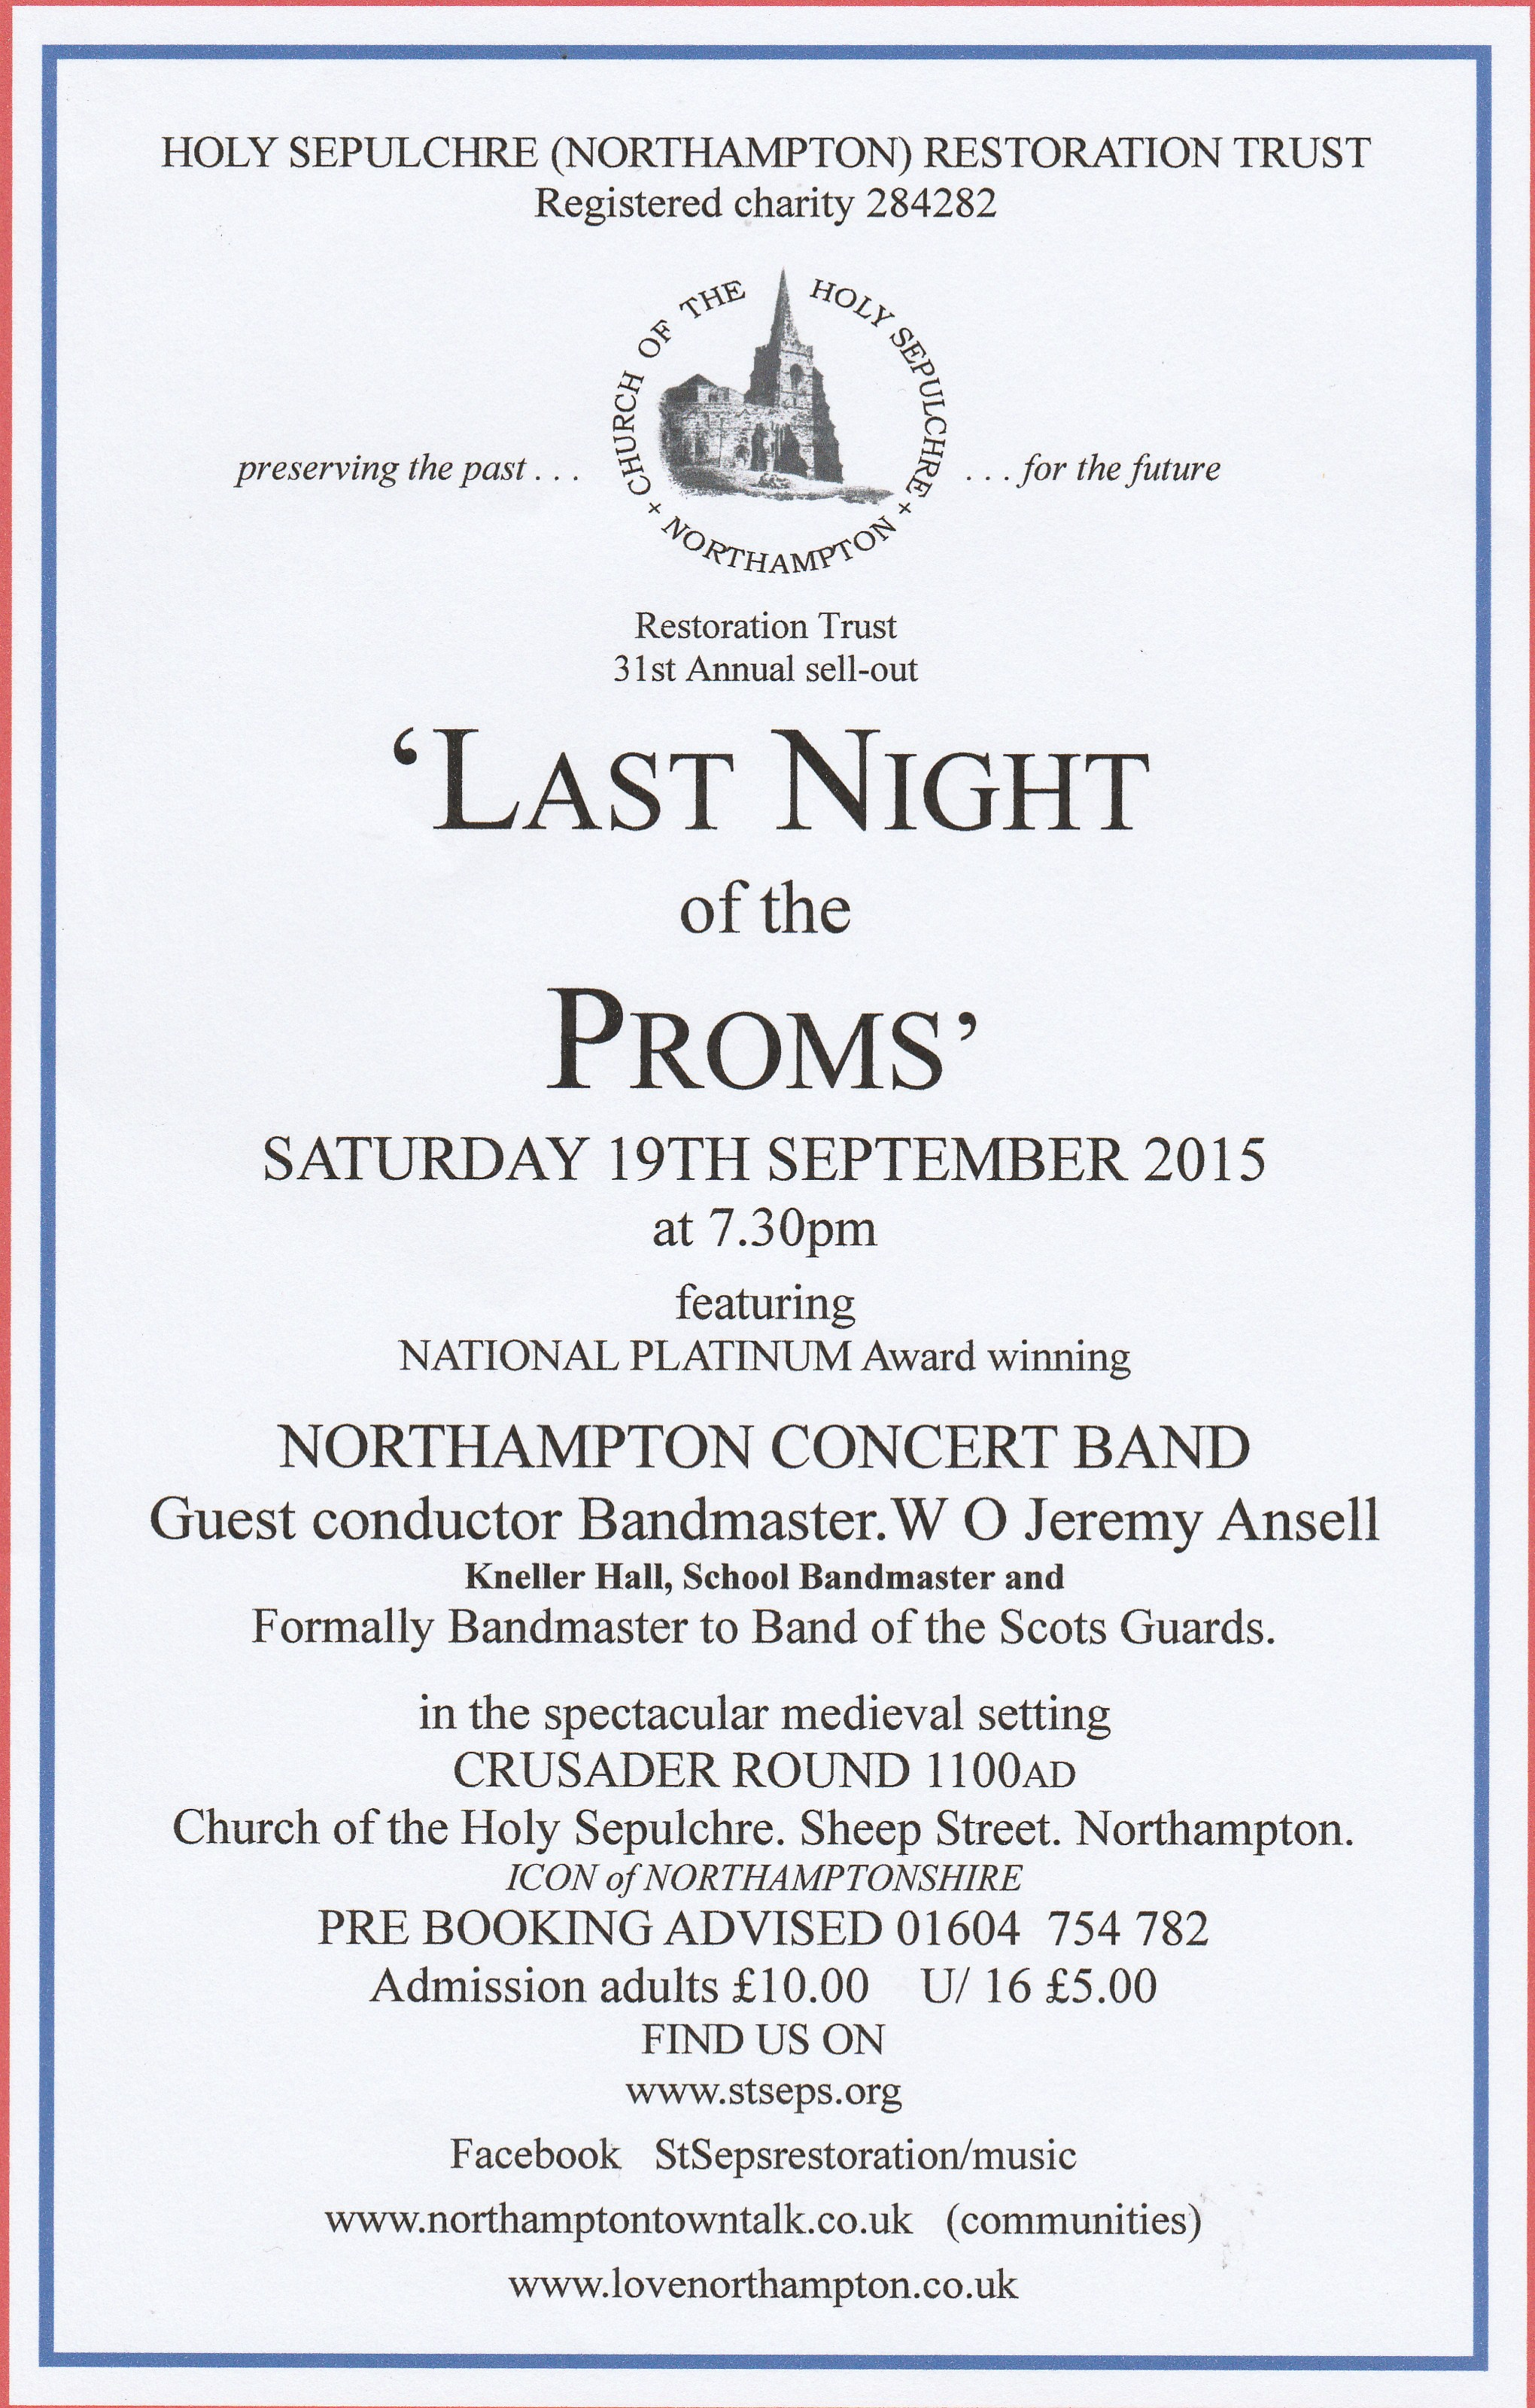 Last Night of the Proms at The Church of the Holy Sepuchlre Northampton!  Saturday 19th September at 7.30pm.  Featuring national platinum award winning Northampton Concert Band.  Admission: Adults £10.00, U16s £5.00  Book on 01604 754782  Web: www.stseps.org, Facebook:StSepsrestoration/music